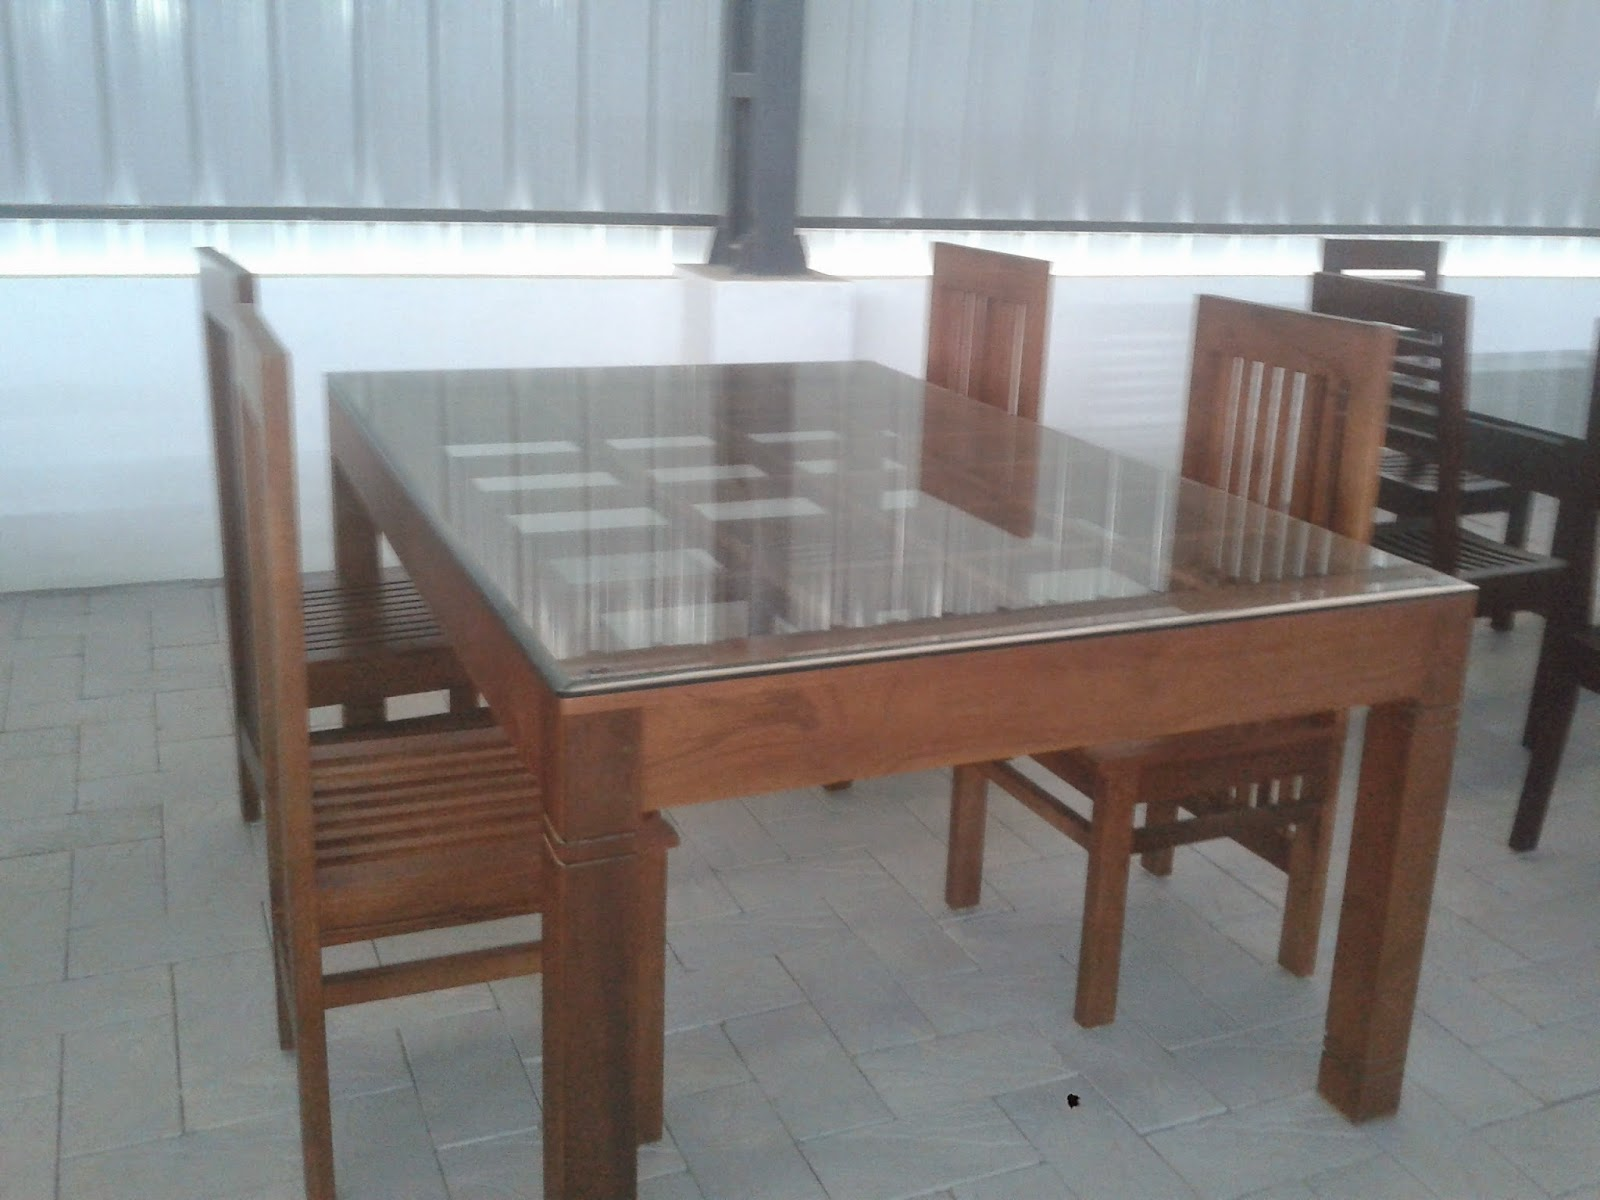 Kerala style carpenter works and designs december 2014 for Dining table latest model